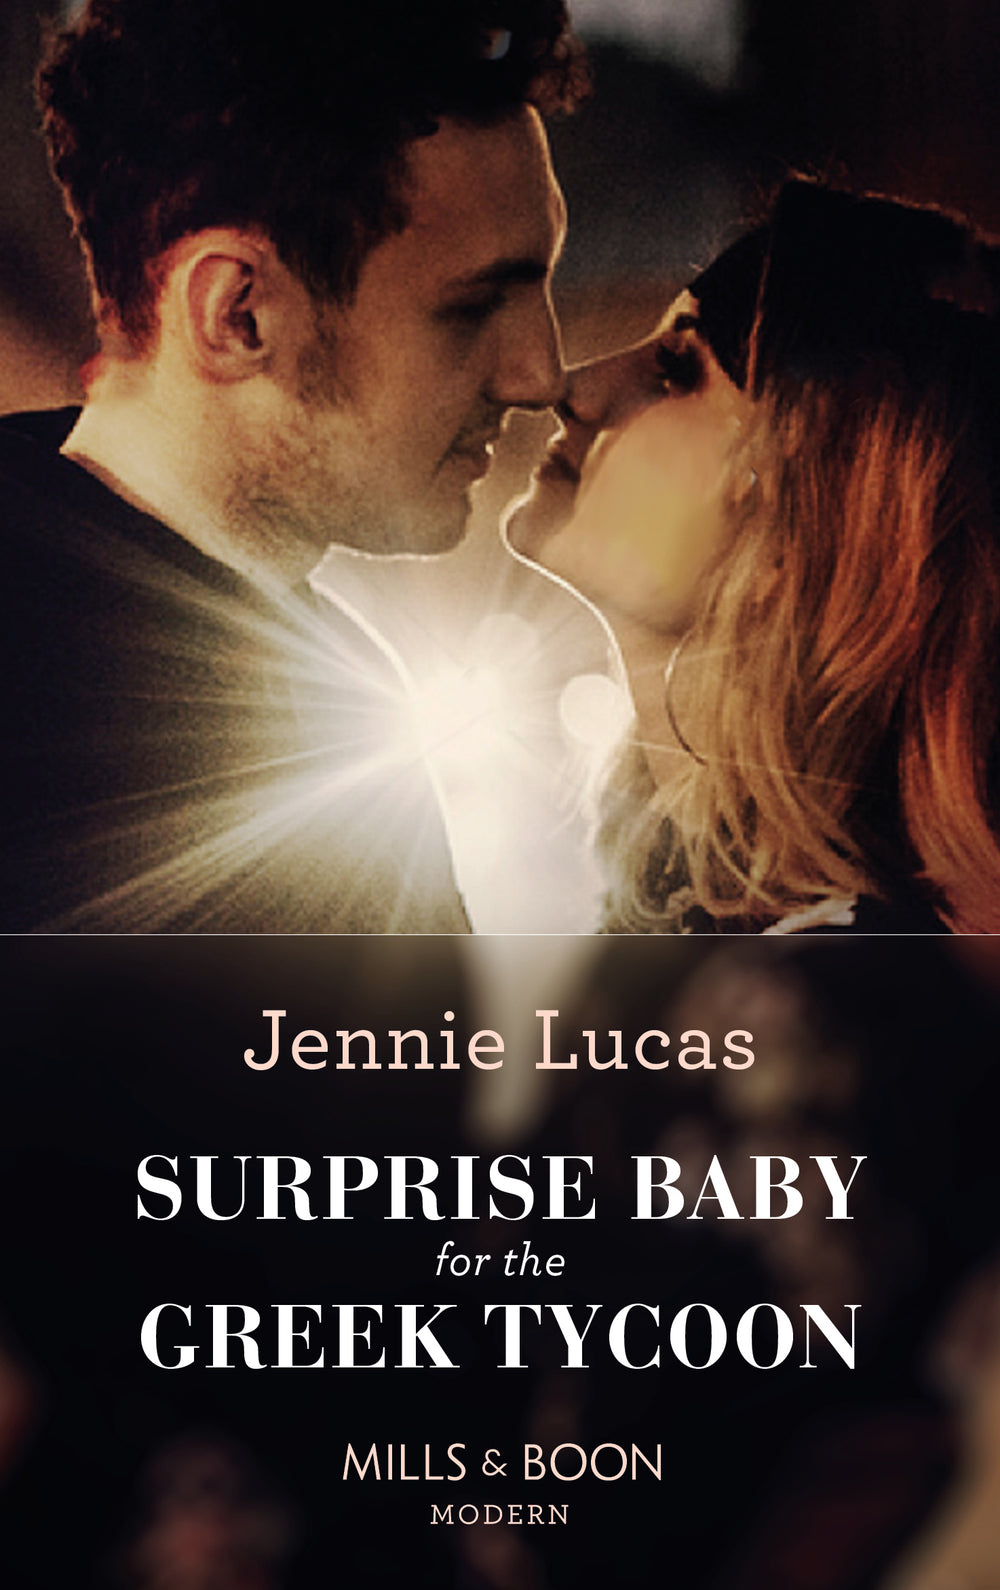 Surprise Baby for the Greek Tycoon - Chapter 8